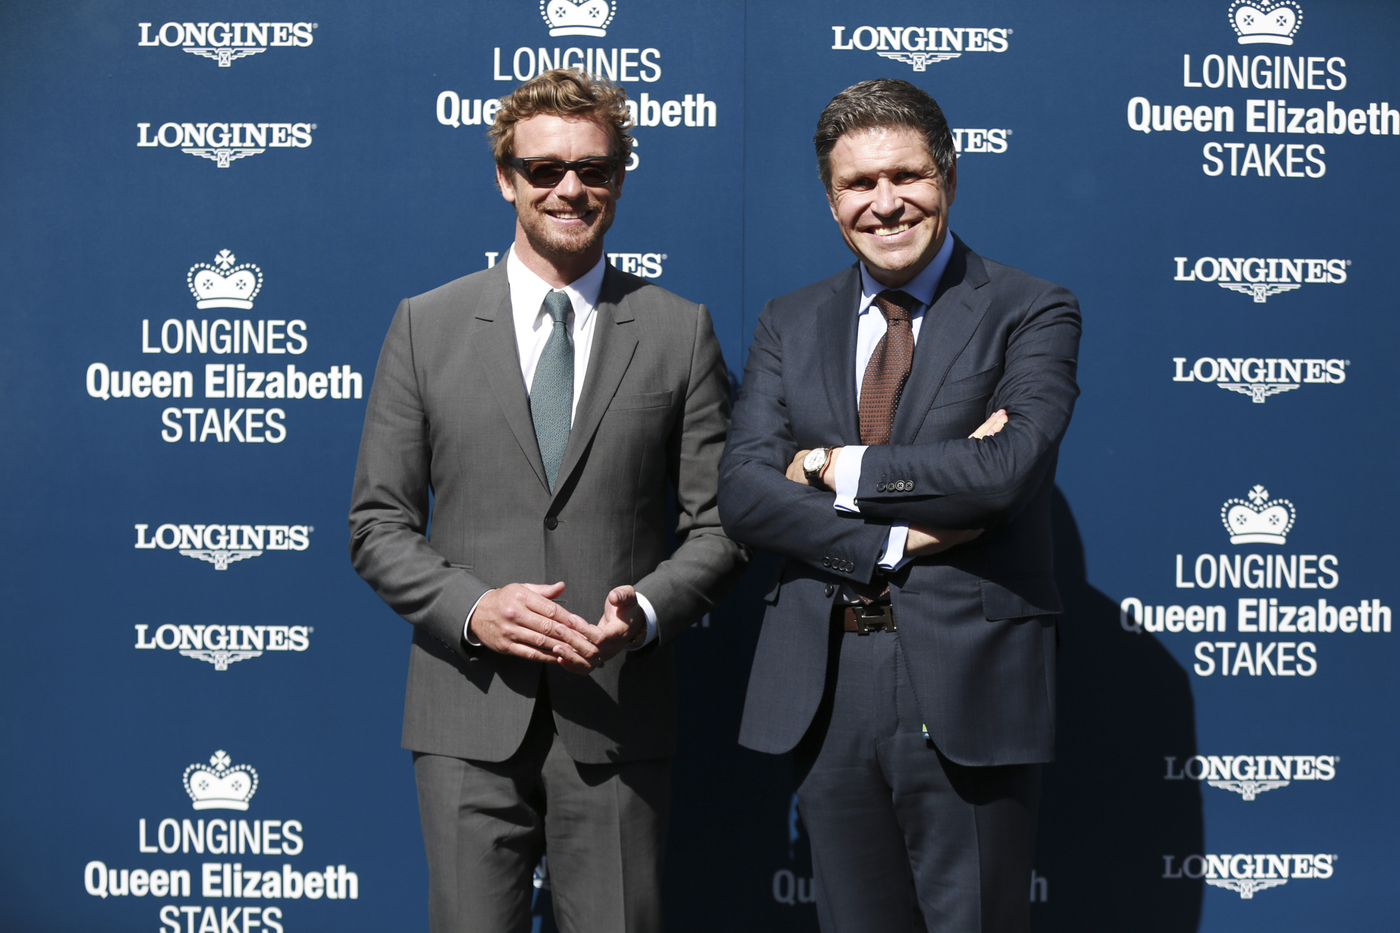 Longines Flat Racing Event: 2014 edition of the Longines Queen Elizabeth Stakes Raceday with the presence of Simon Baker 3